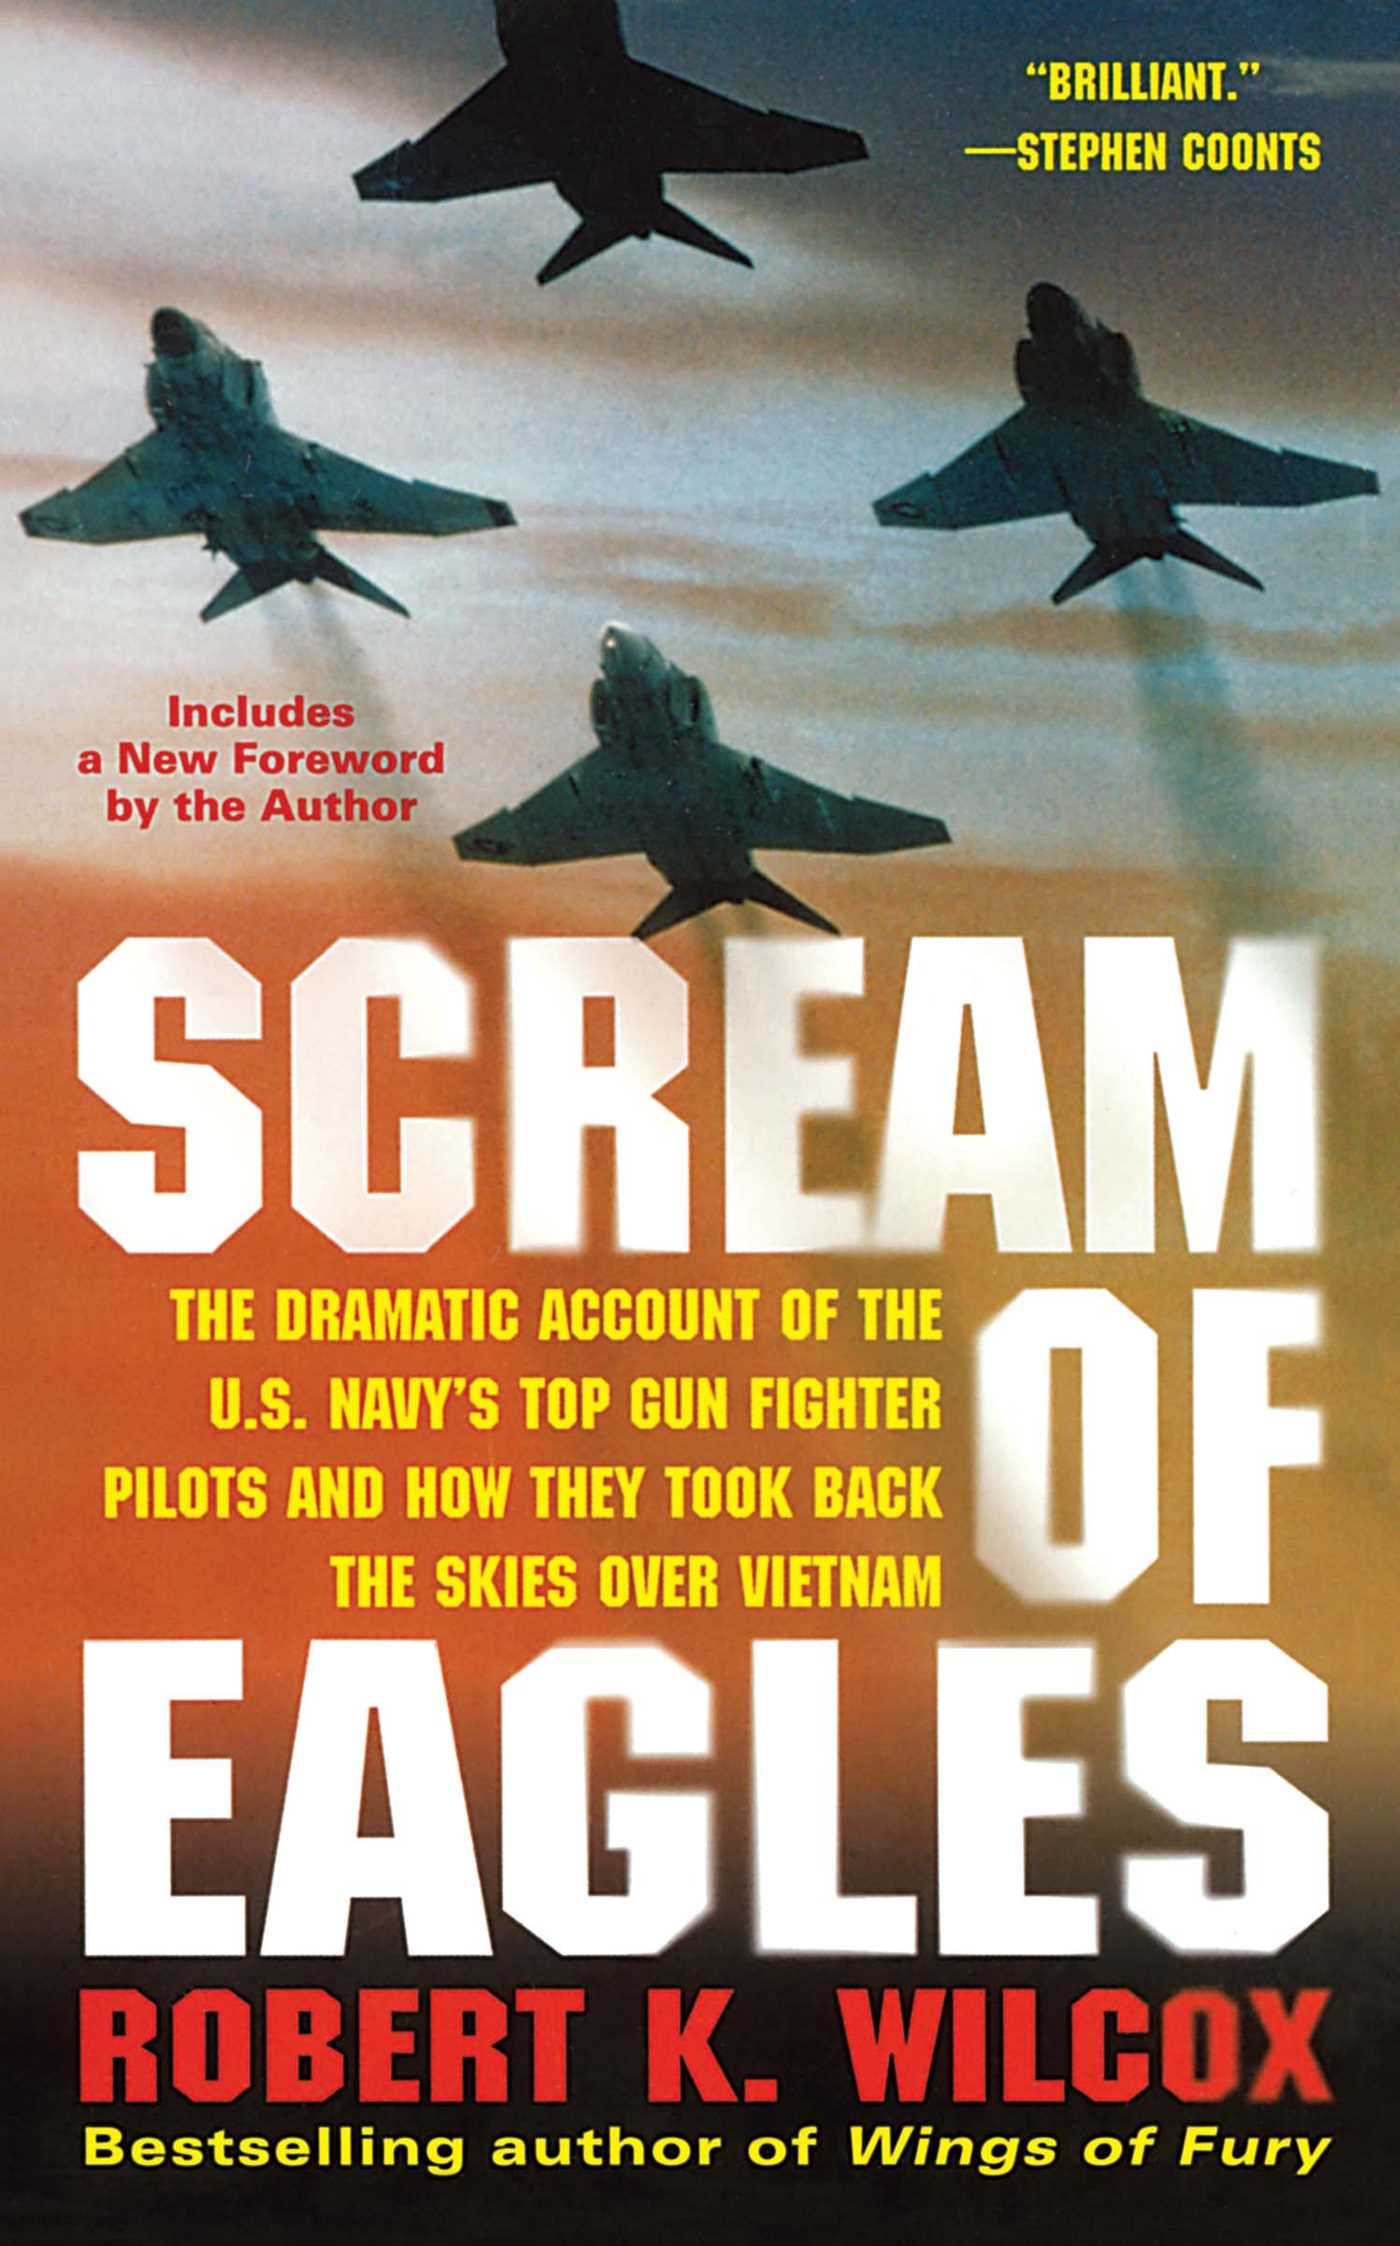 Scream-of-eagles-9781476788418_hr